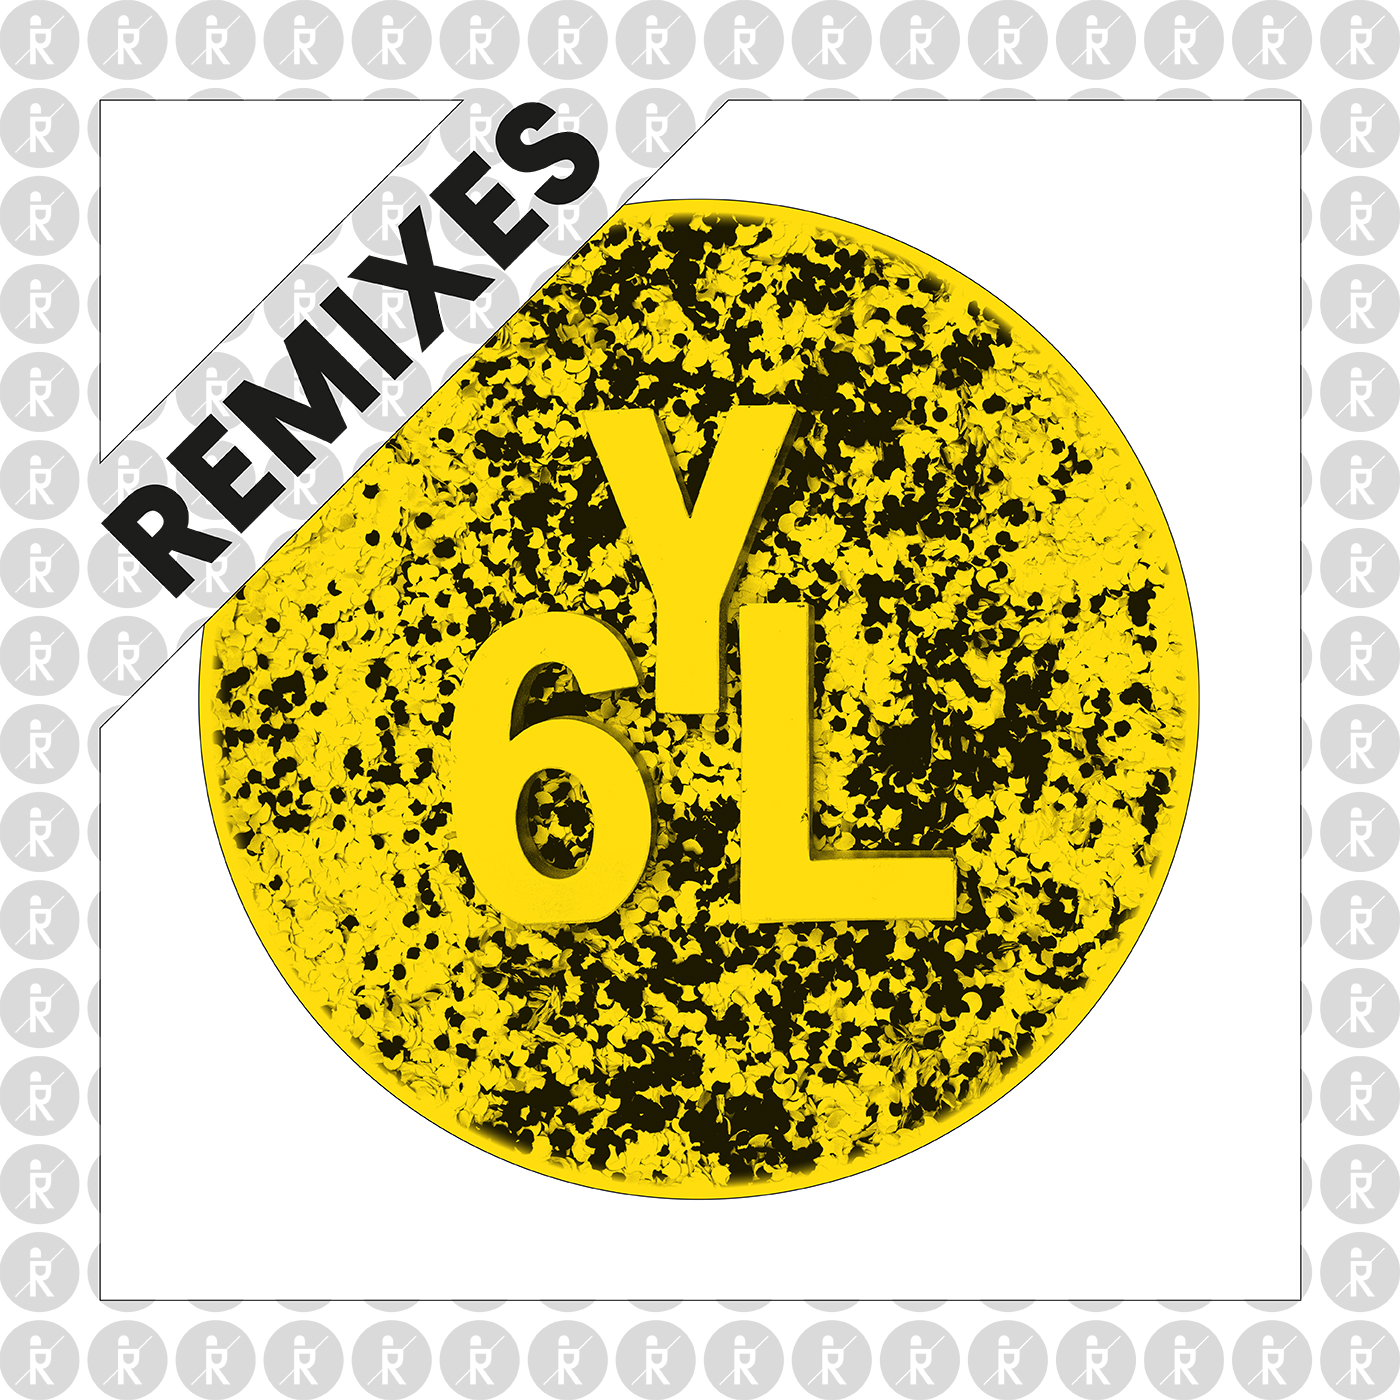 6YL Remixes - Ritter Butzke Studio Lost 3